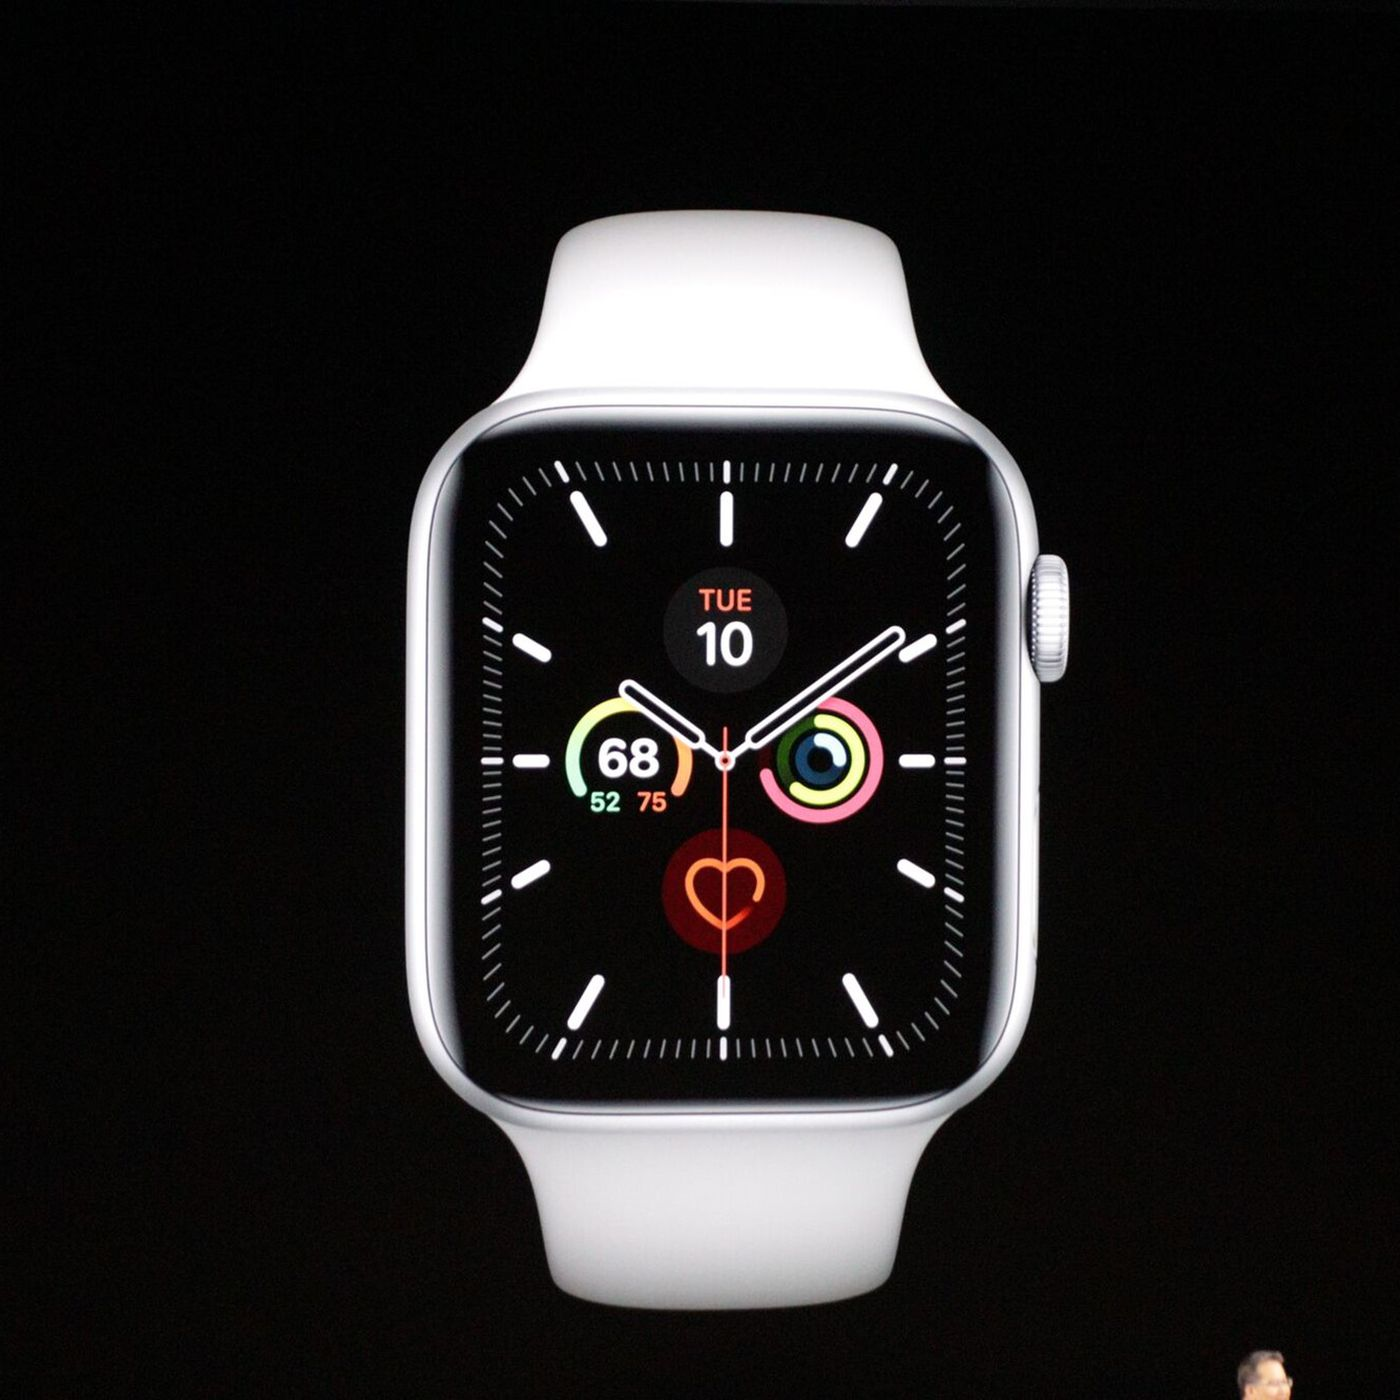 Apple Watch Series 5 Has An Always On Display And Comes In Titanium Or Ceramic Finishes The Verge